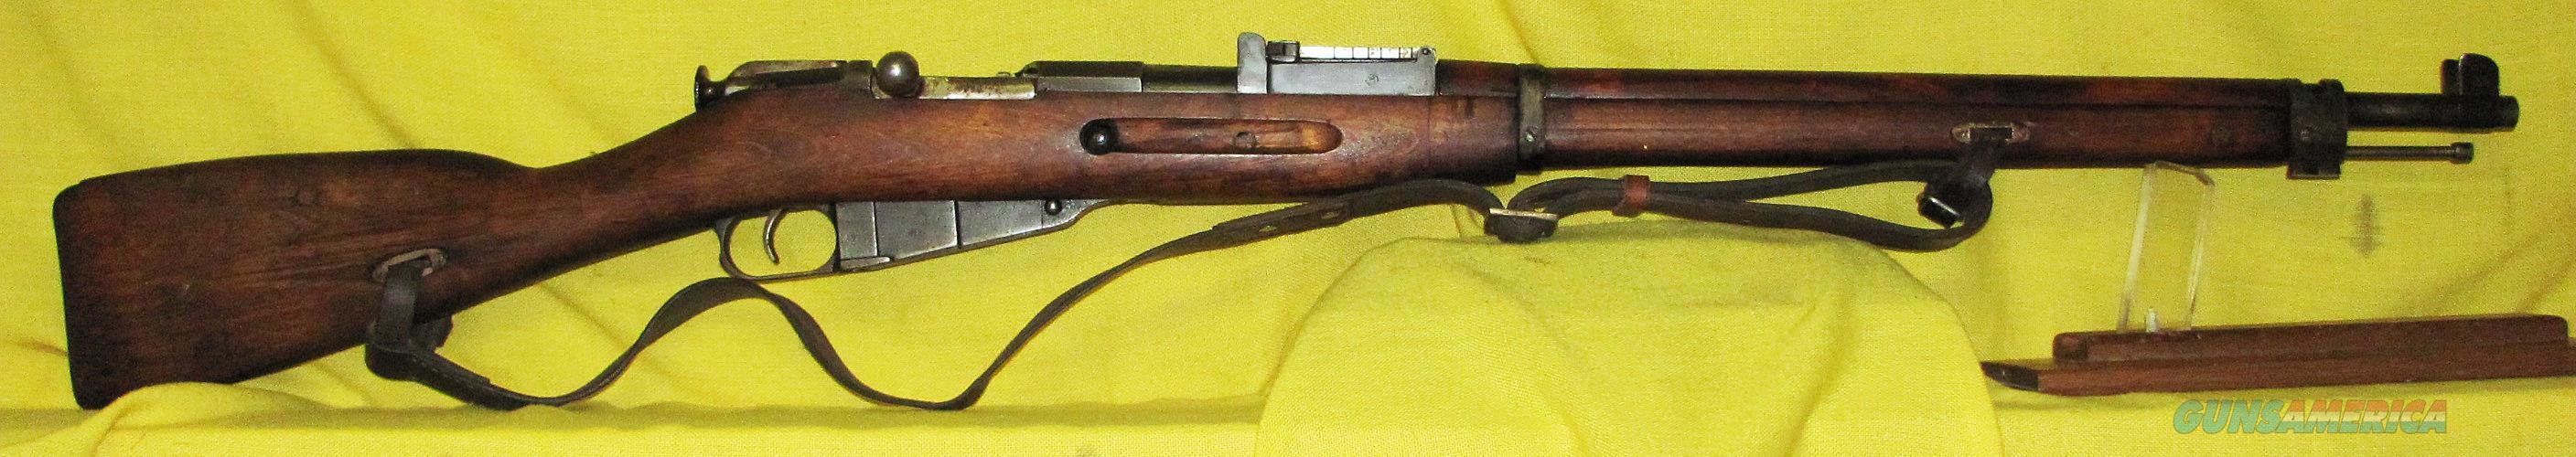 MOSIN-NAGANT M28  Guns > Rifles > Mosin-Nagant Rifles/Carbines